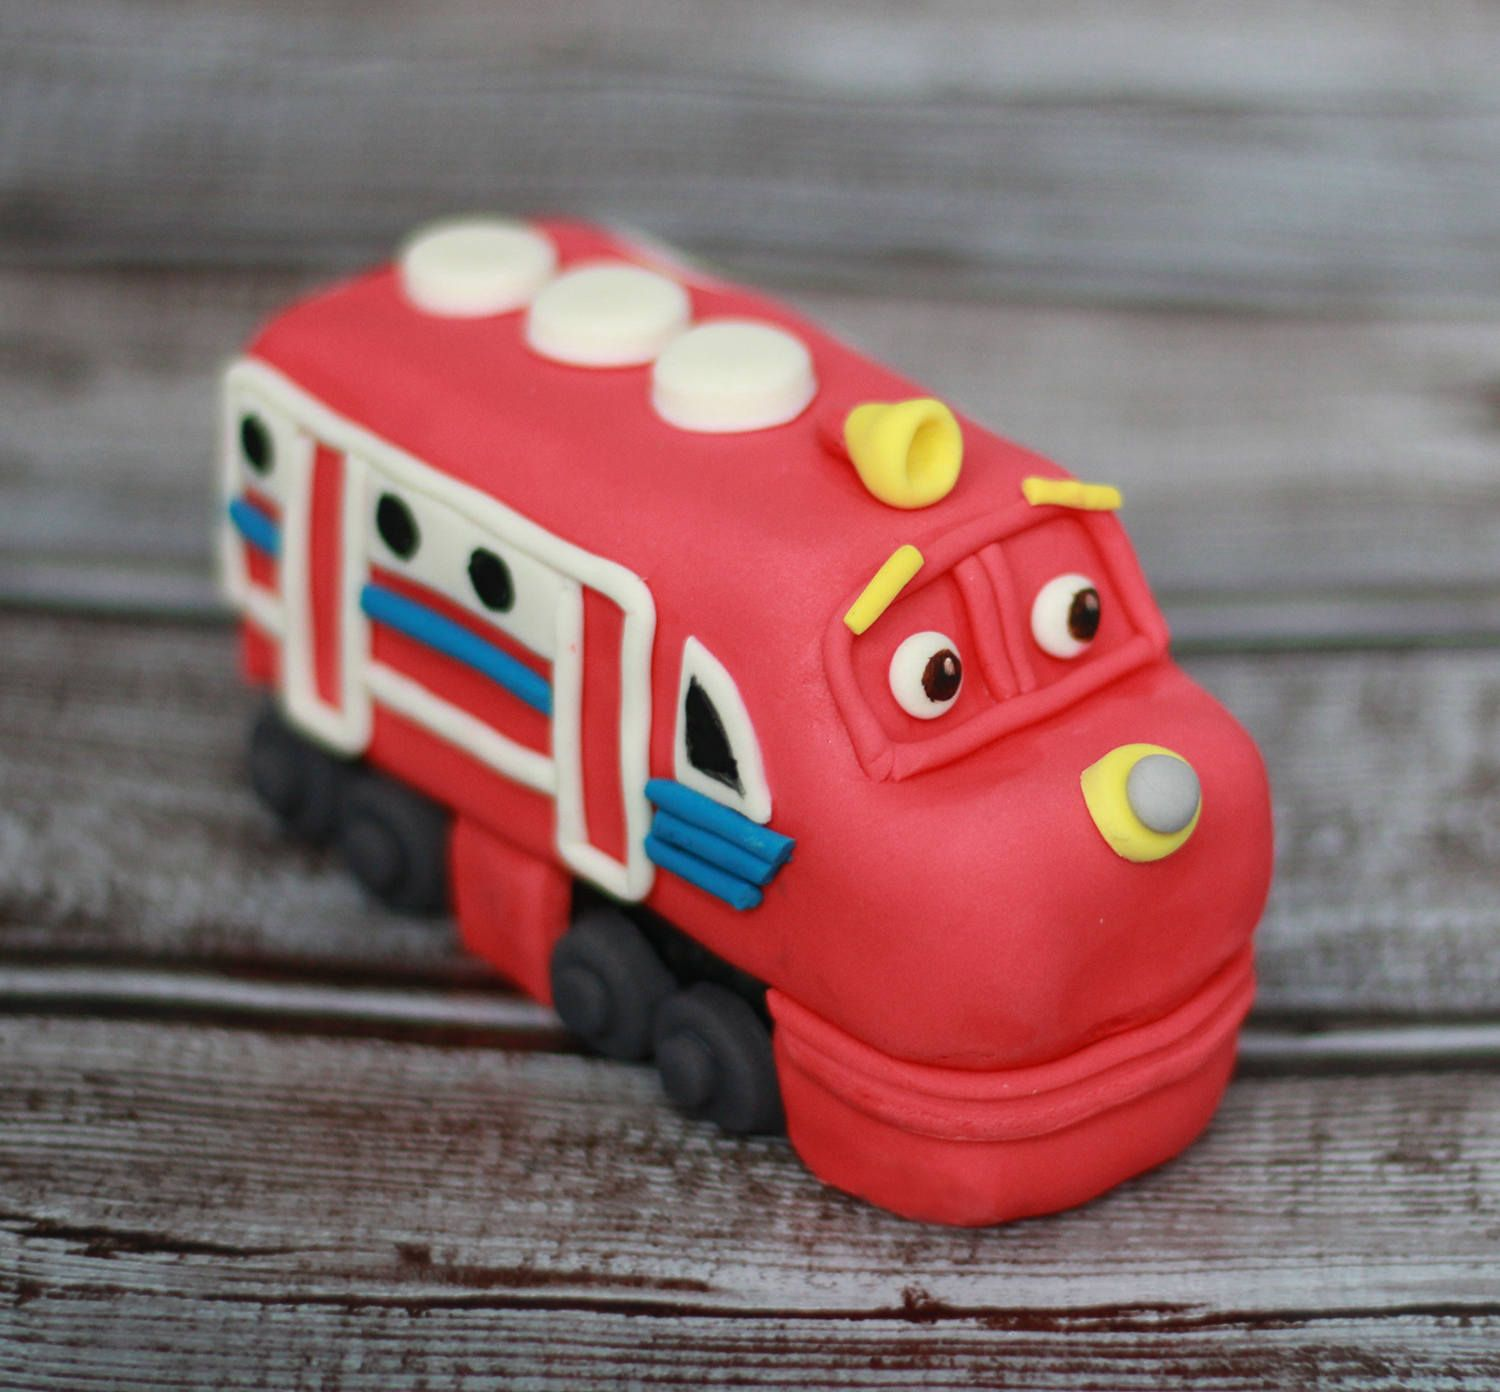 Chuggington Train edible cake topper Any character of Chuggington